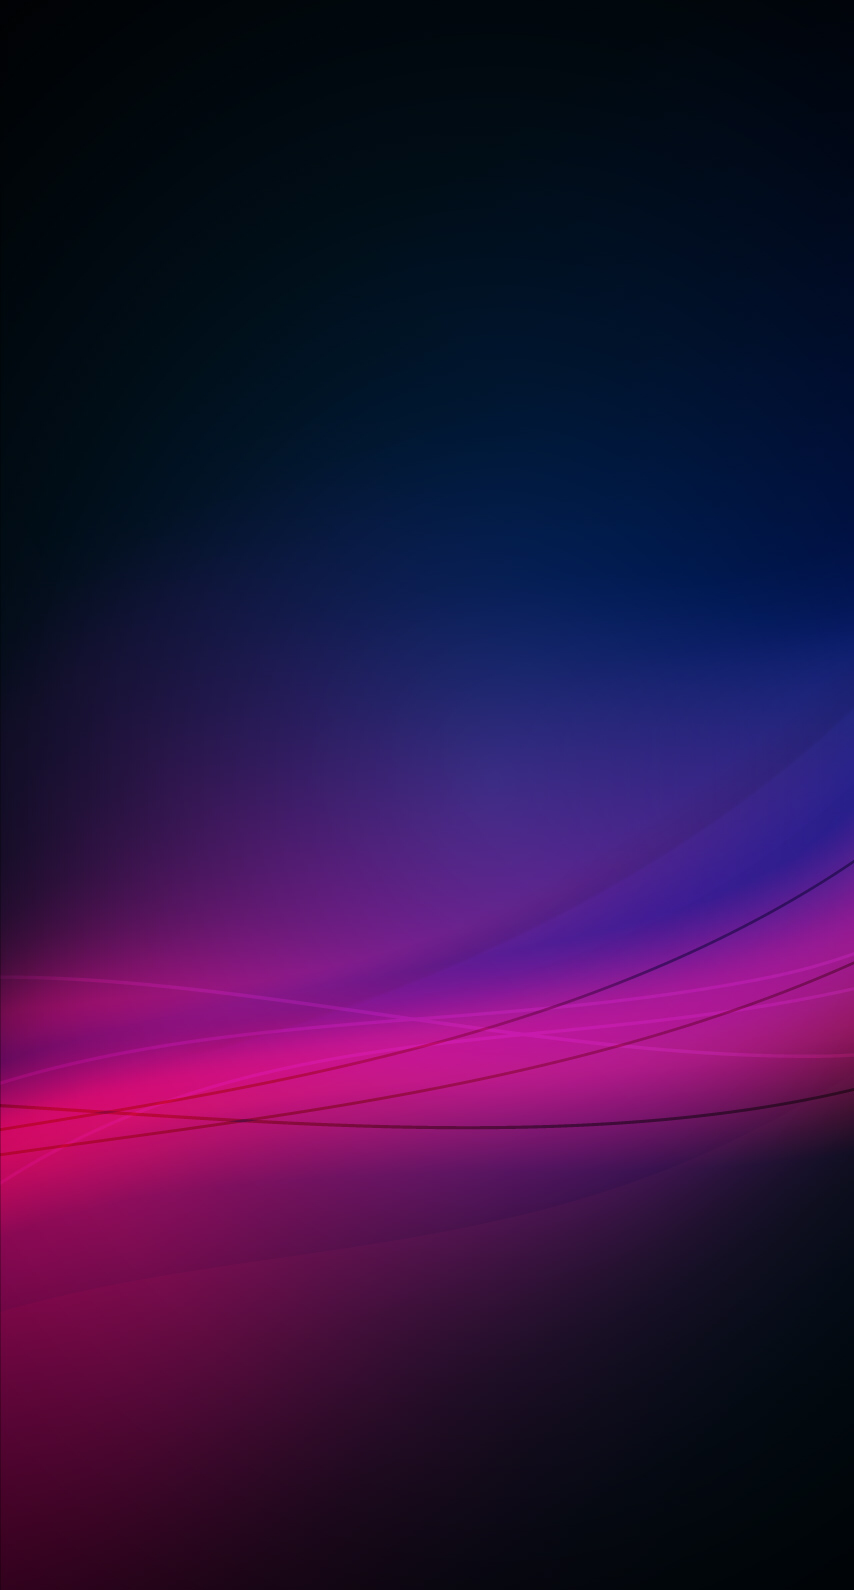 Iphone Elegant Abstract Purple Black Wallpaper Black Wallpaper Iphone Black Wallpaper Xperia Wallpaper